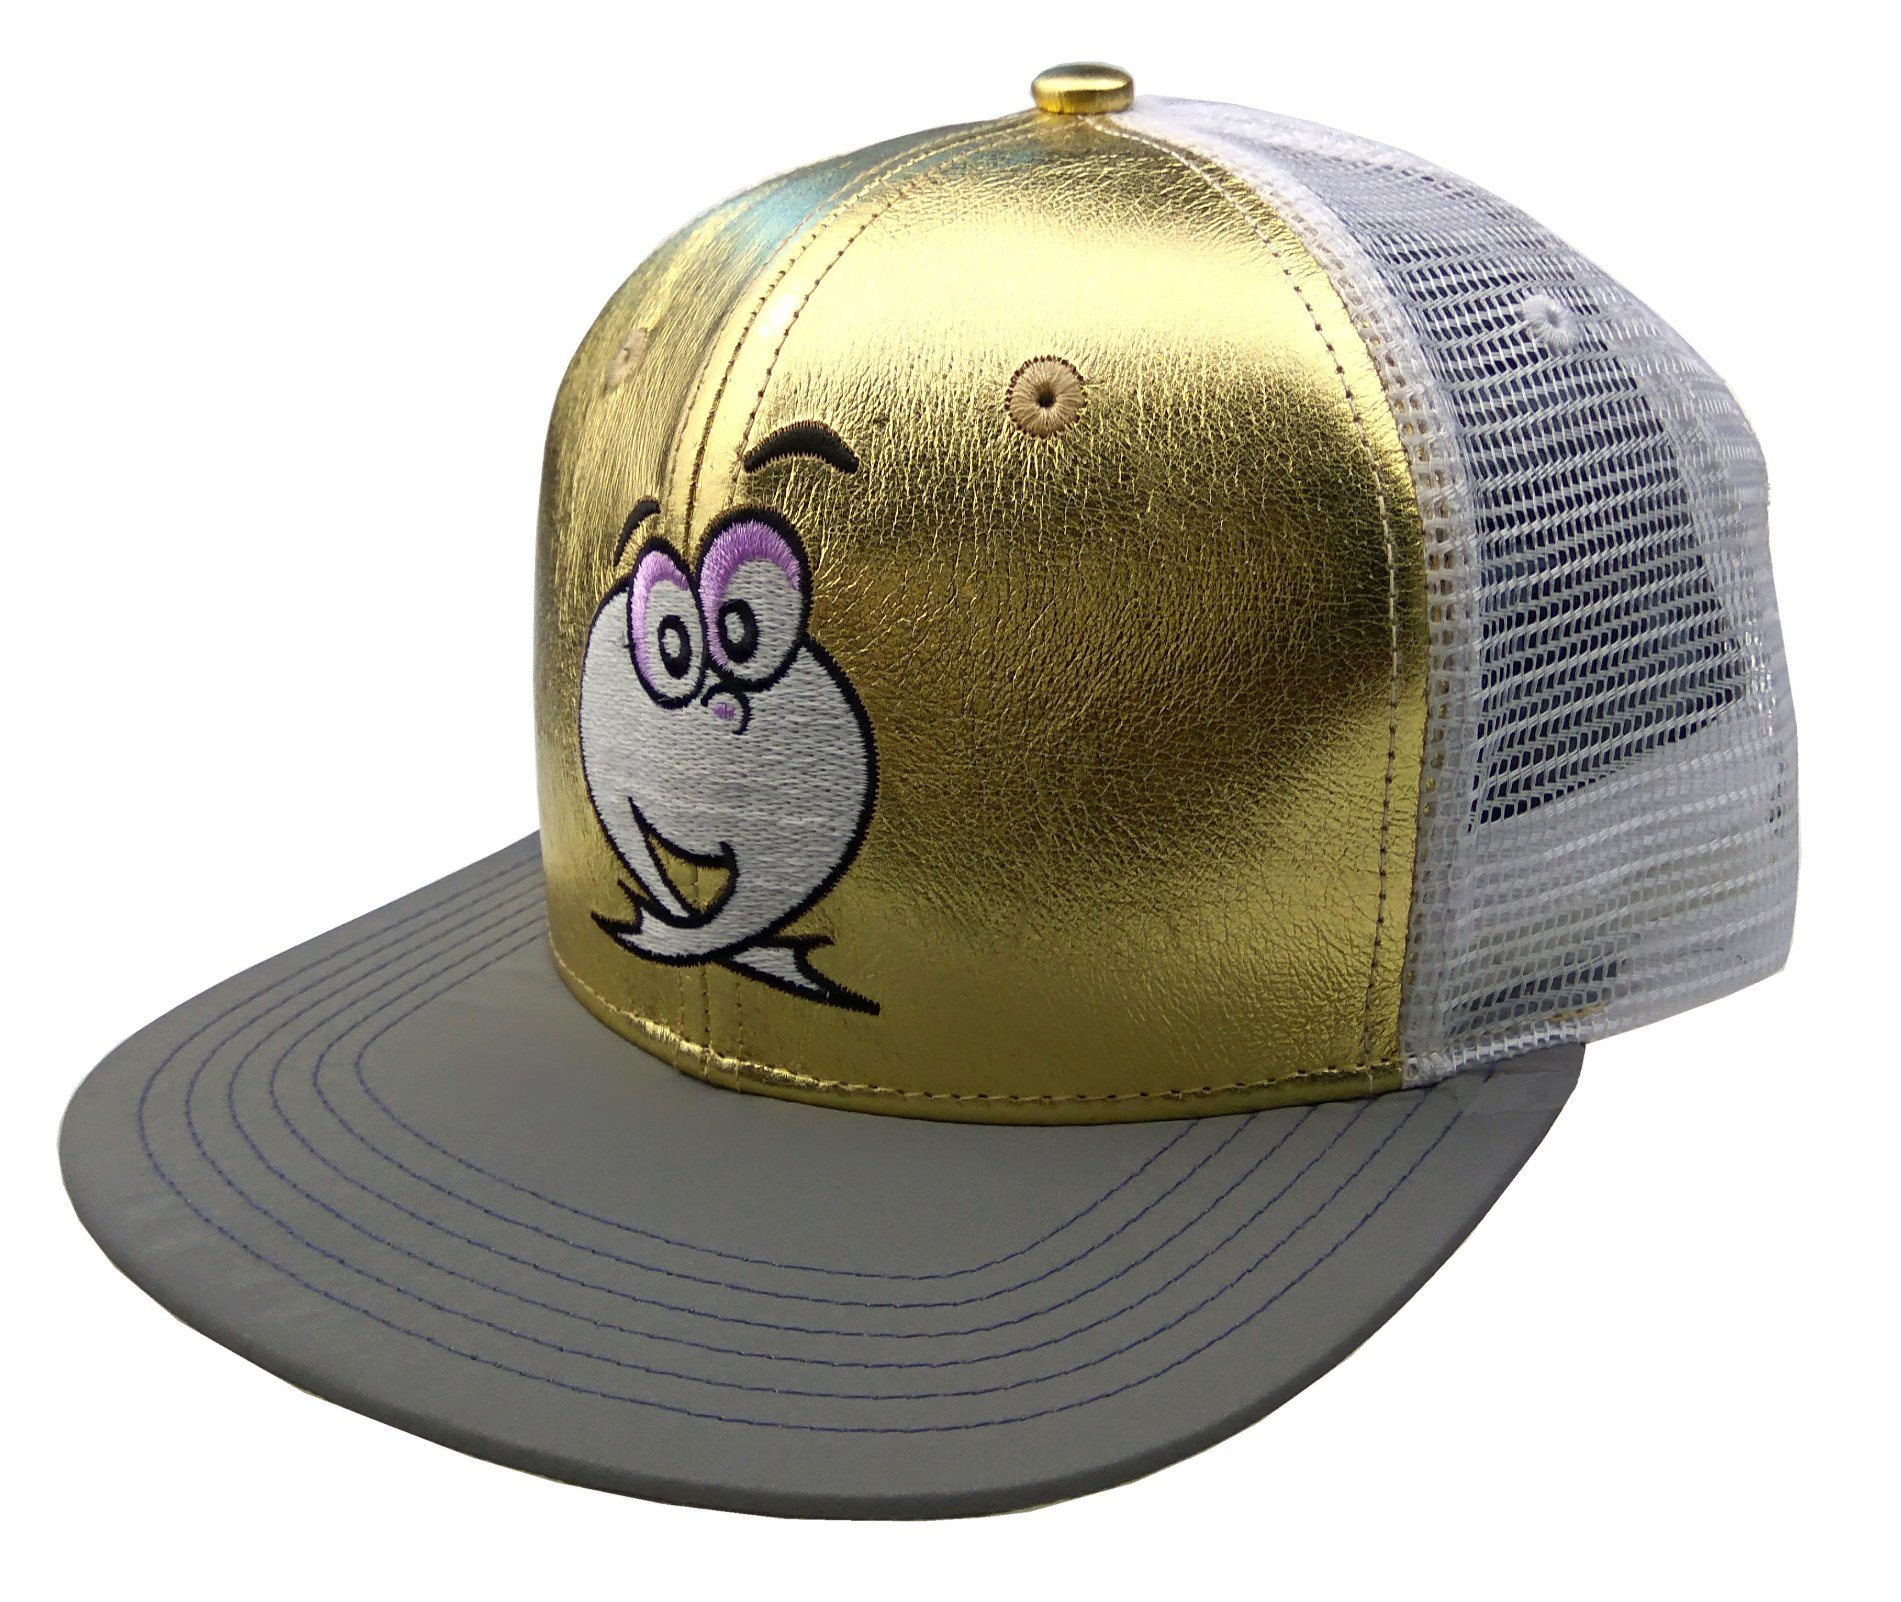 Custom Gold/White Embroidery 6 Panels PU/Mesh Flat Brim Trucker Cap